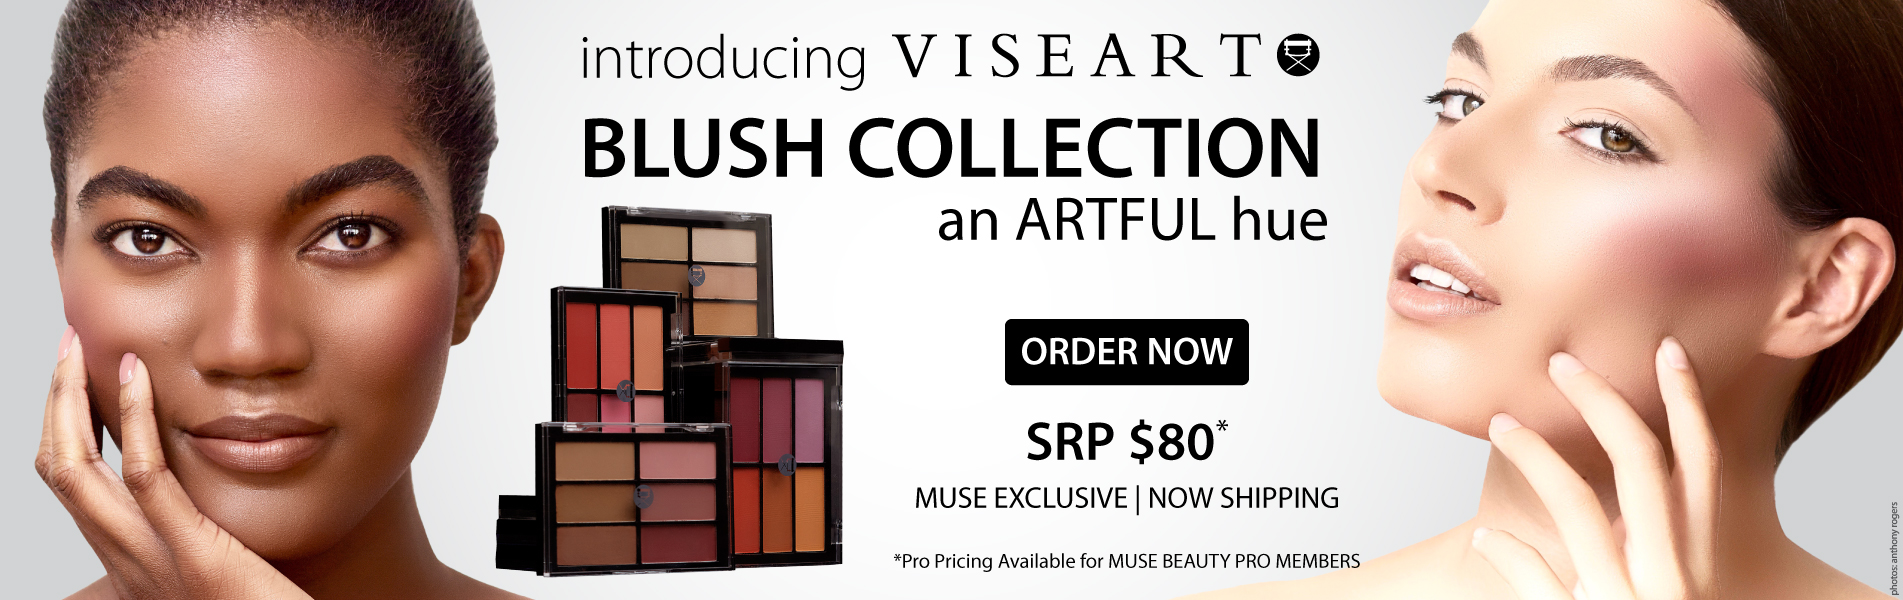 Viseart Blush Palette Collection